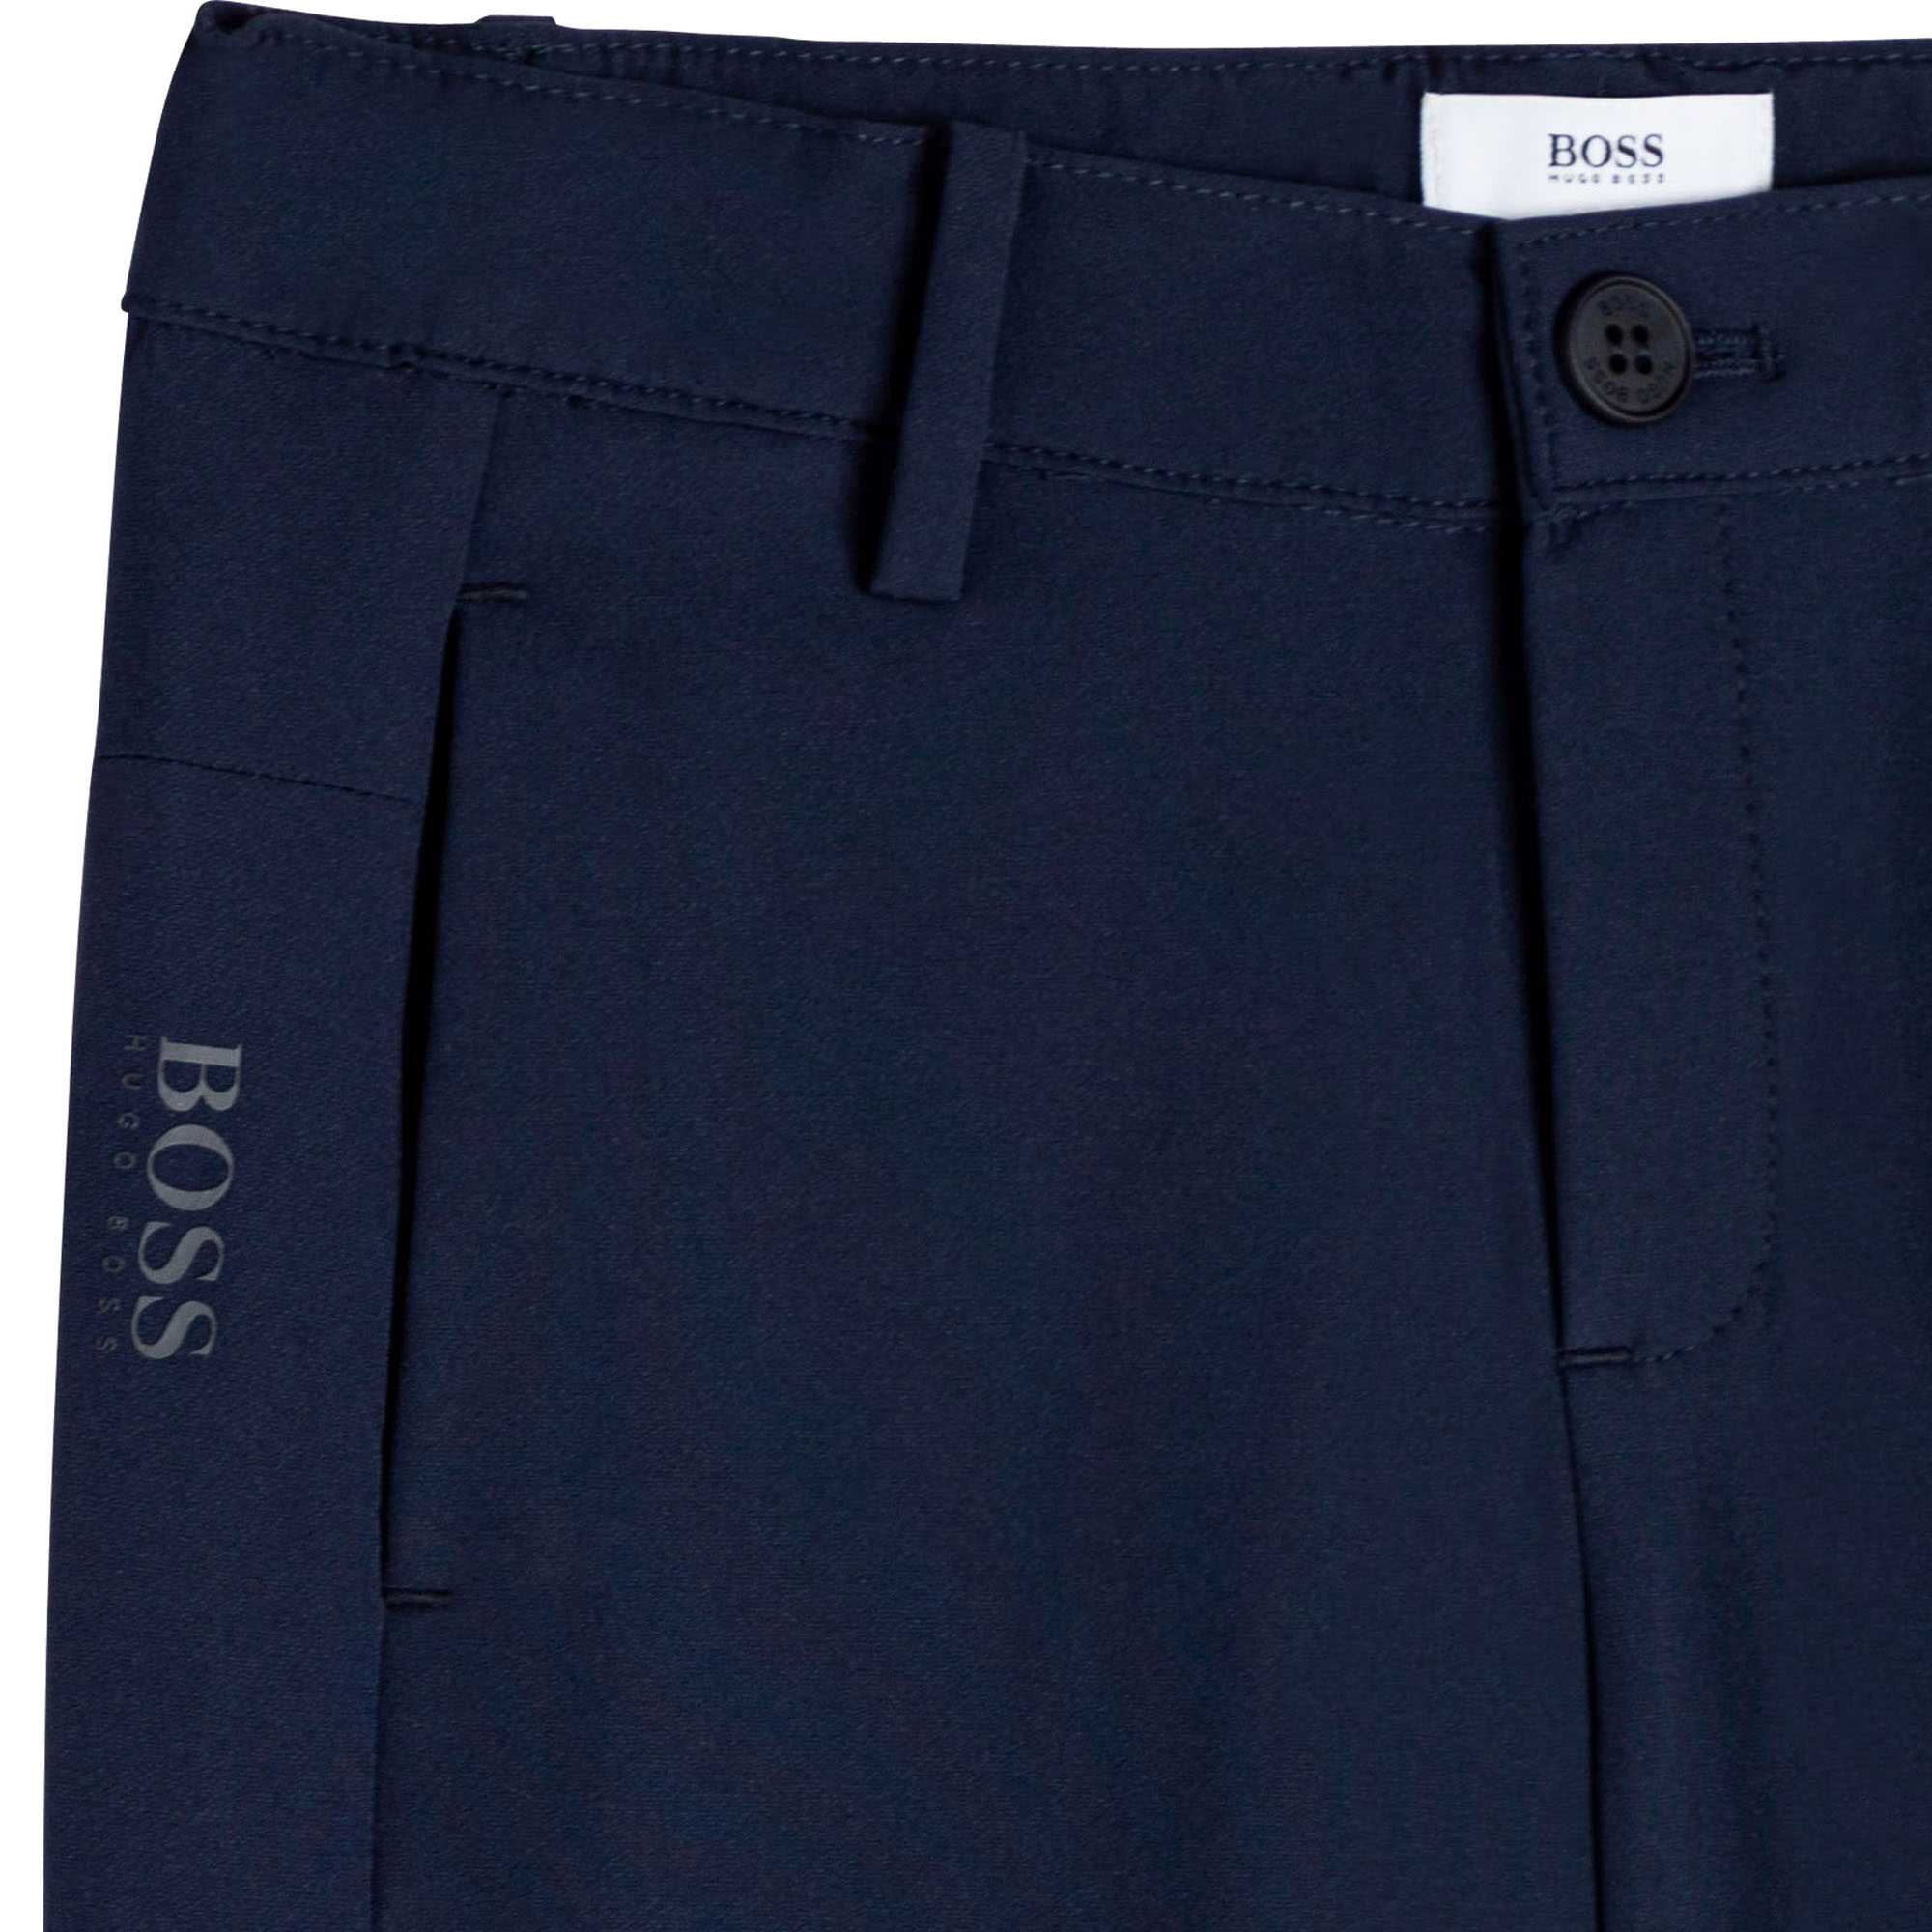 pants with pockets BOSS for BOY